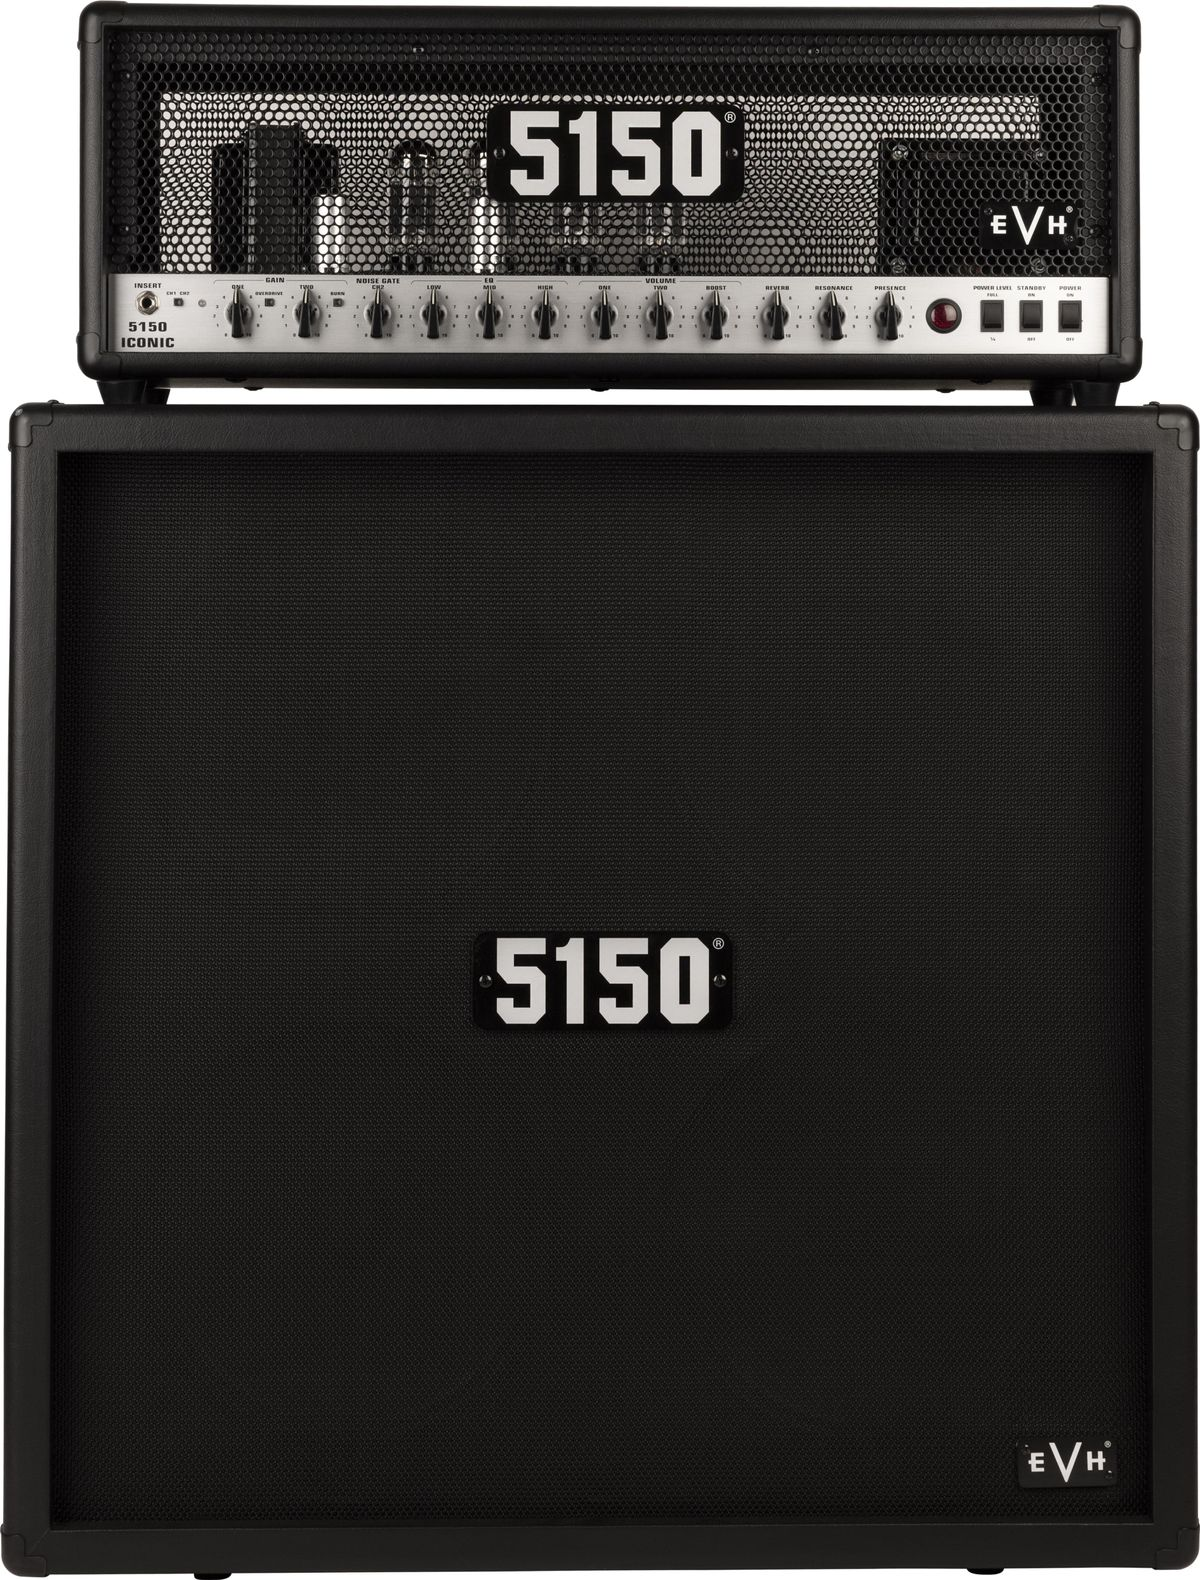 EVH Releases the 5150 Iconic Series